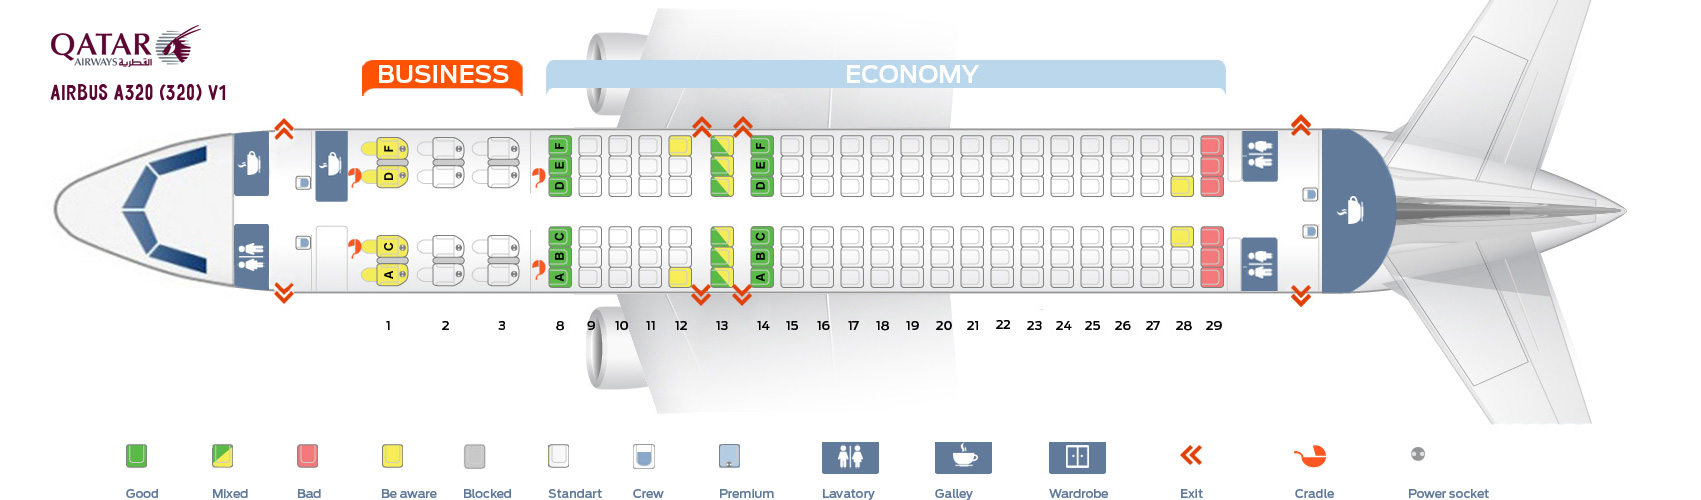 Seat Map Airbus A320-200 V1 Qatar Airways